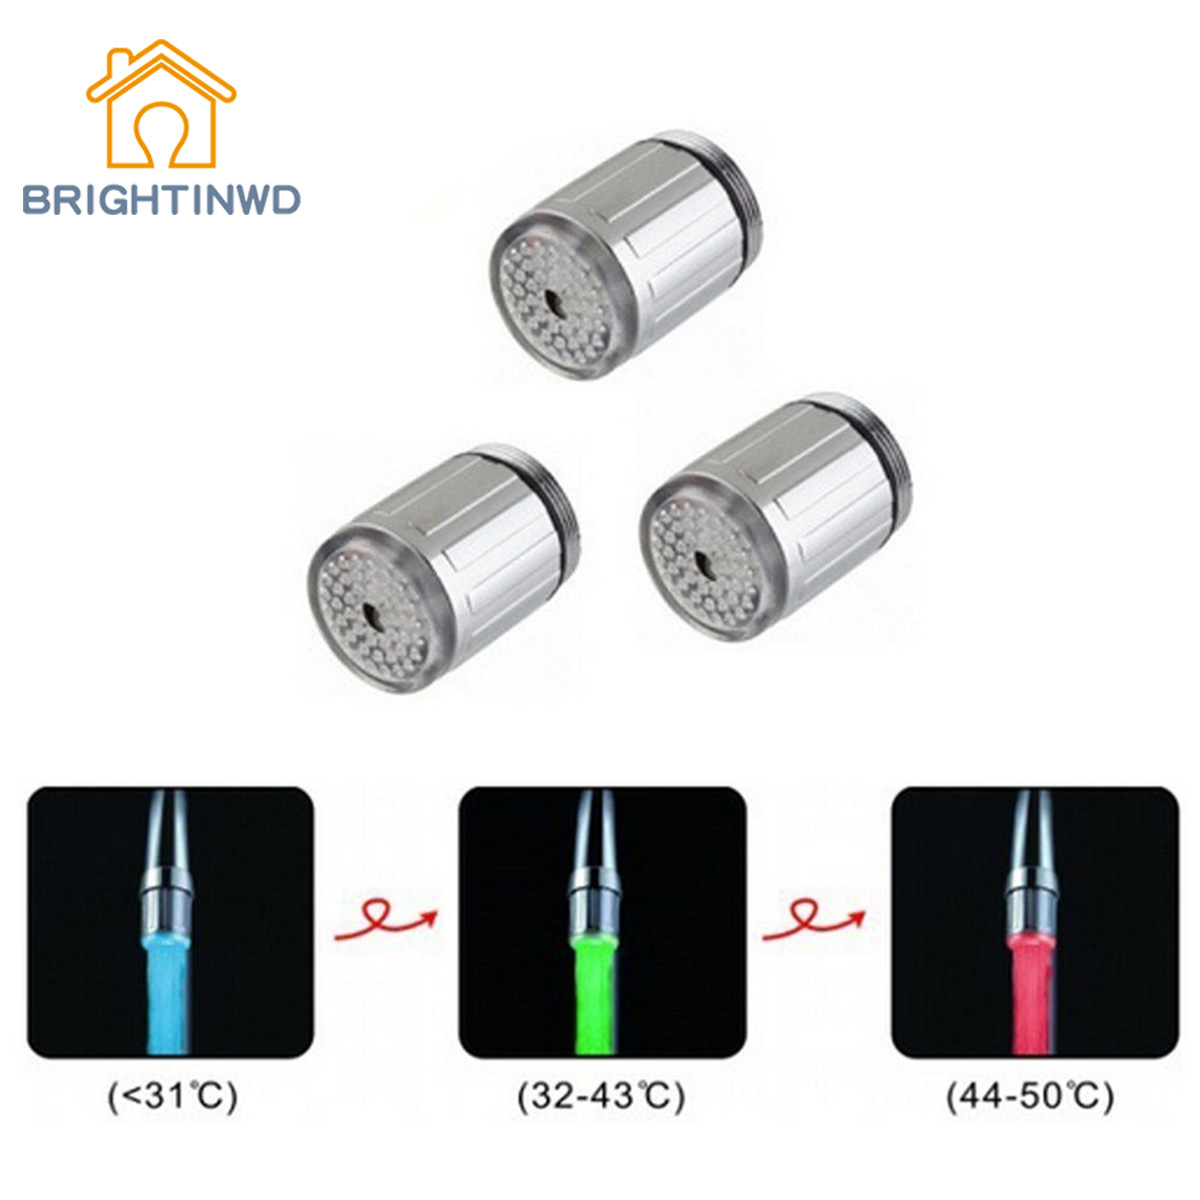 BRIGHTINWD Glow LED Faucet Temperature Sensor Light RGB 3 Color Shower Kitchen Water Tap